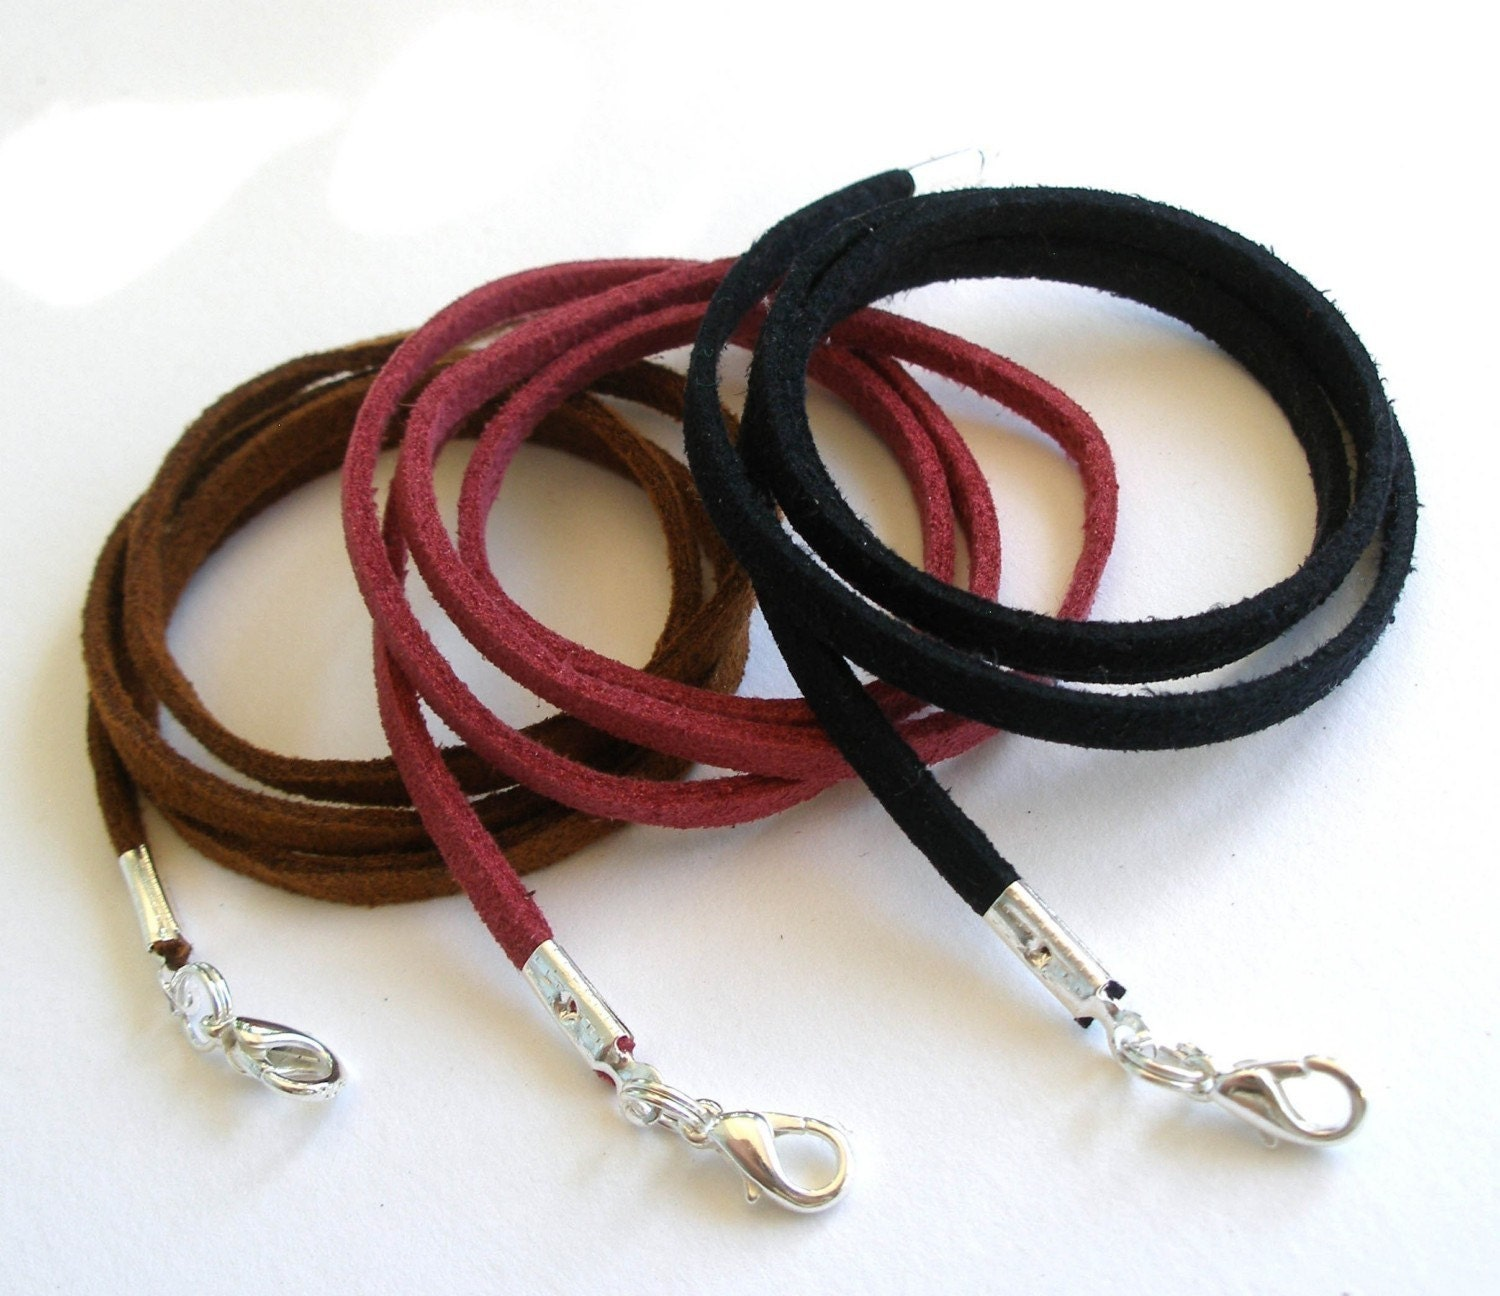 100 - Faux Suede Cord Necklaces - Any Length, 5 Colors - Use w/Aanraku Bails Scrabble/Glass tile Pendants - Handmade in USA